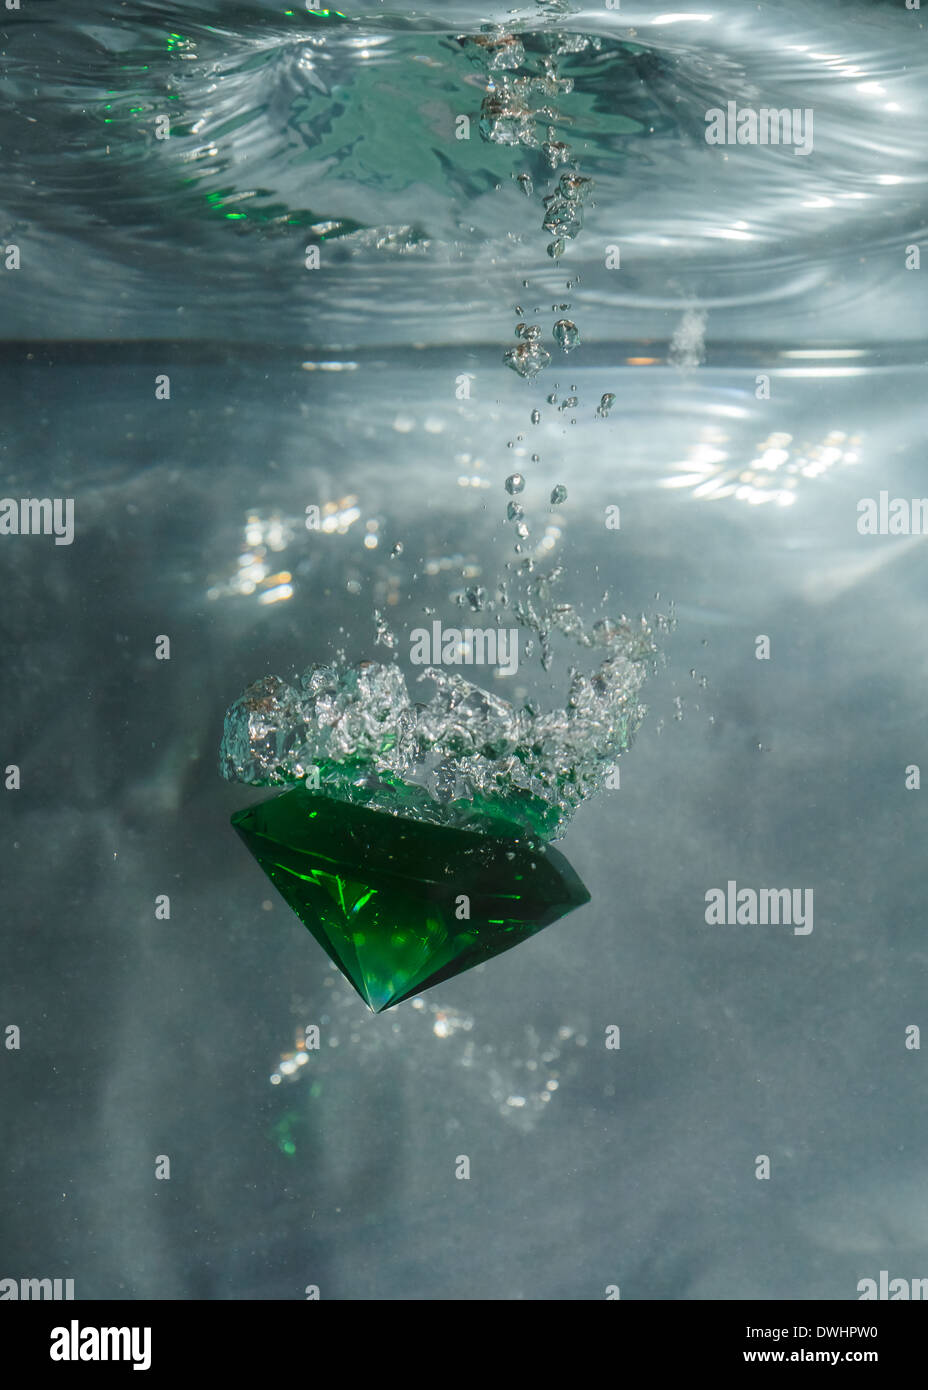 Green emerald falling through the water against a grey background - Stock Image